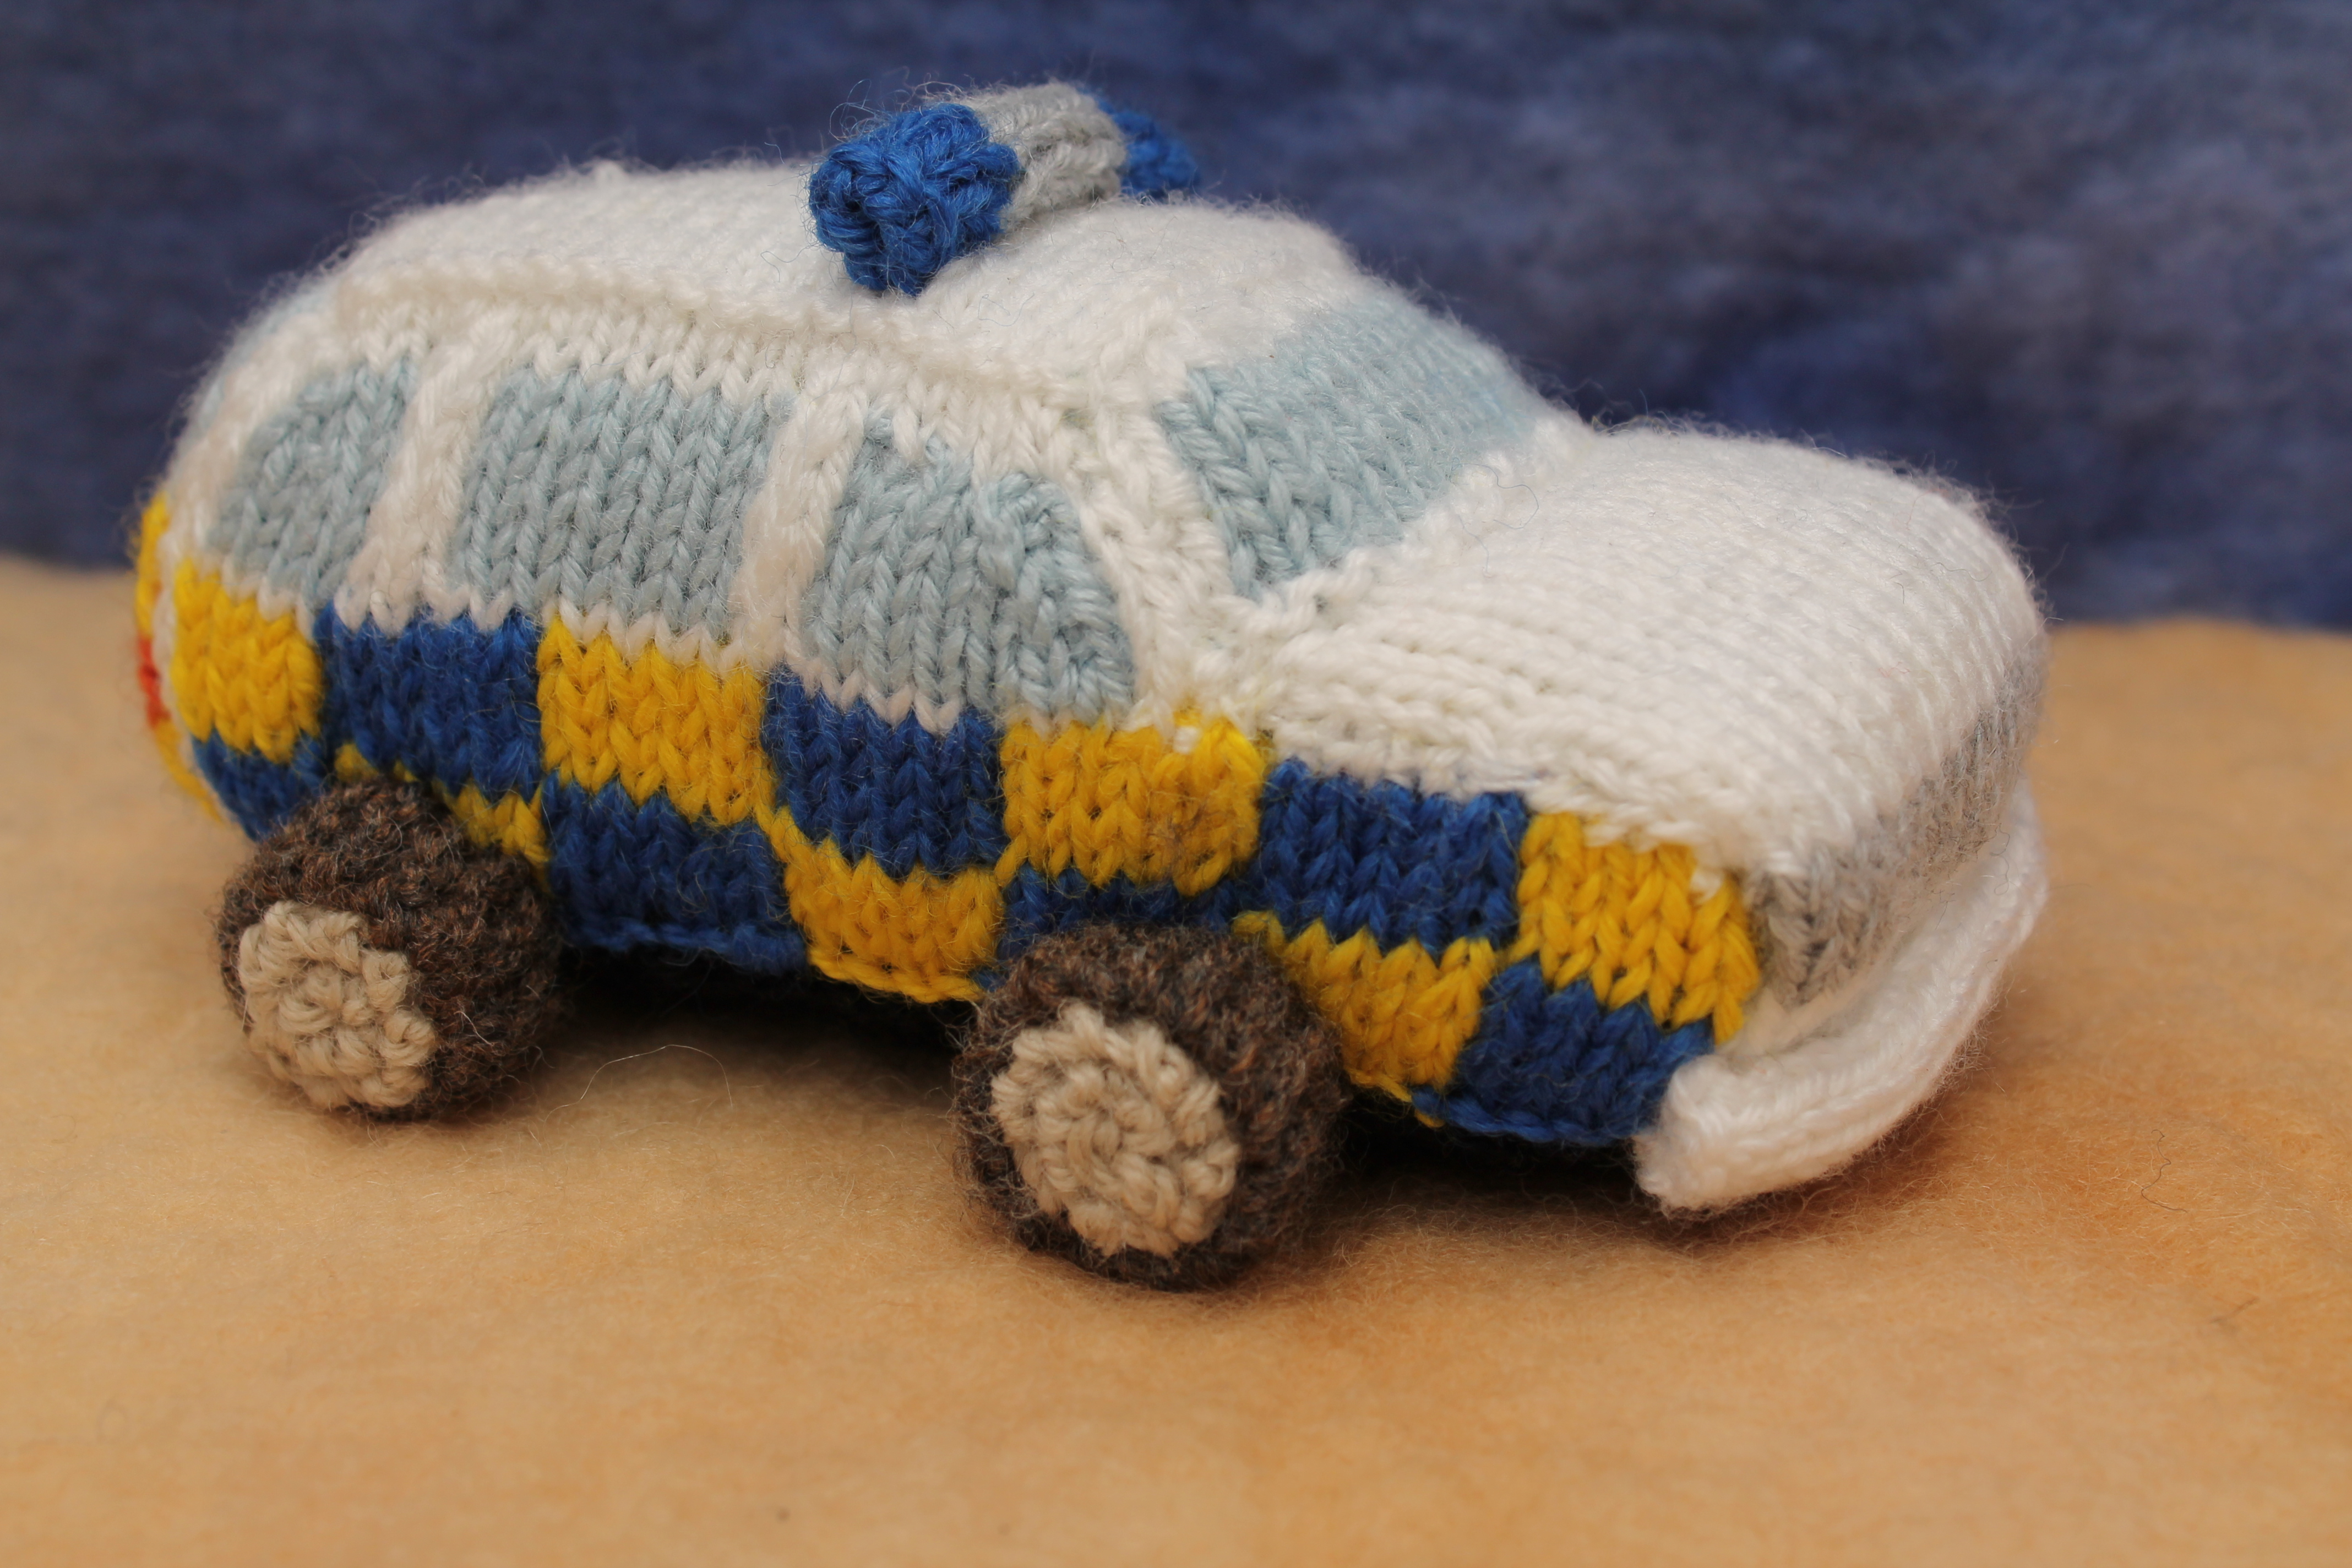 Knitted UK police officers | knits by sachi